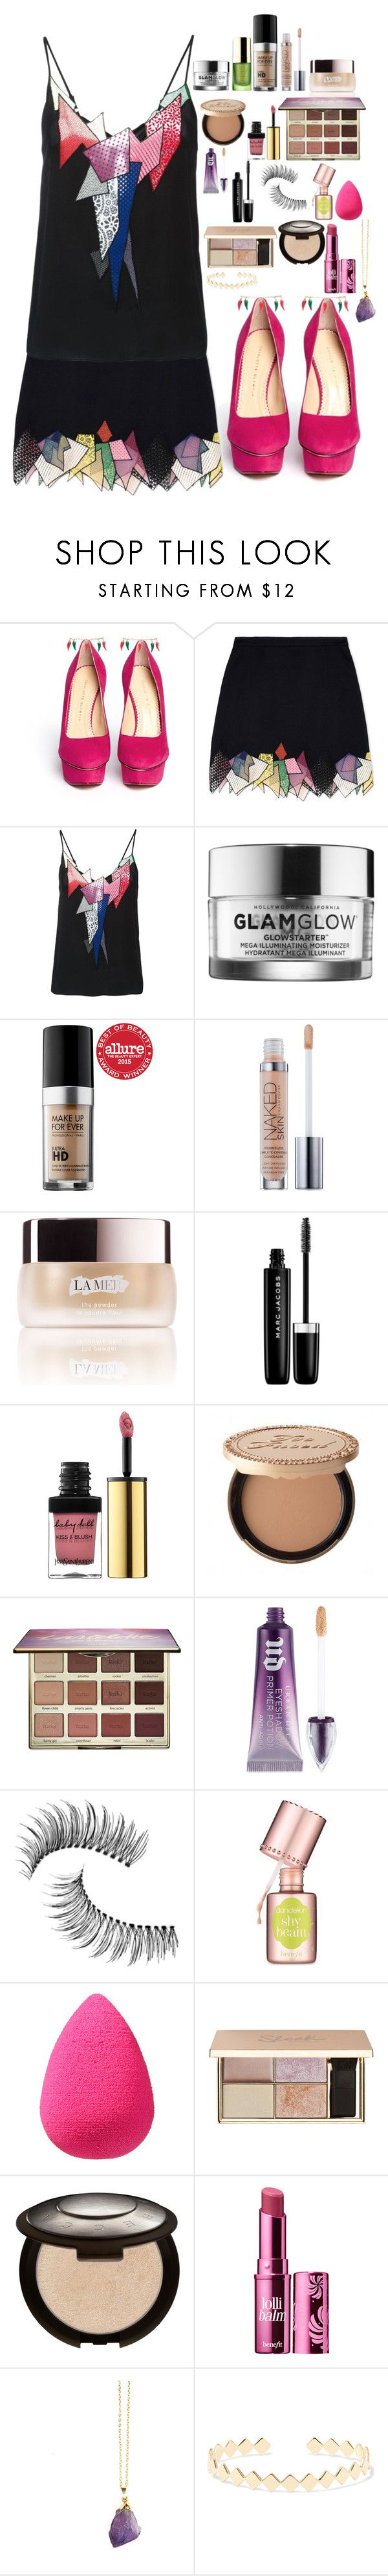 """""""Sin título #756"""" by hpf1102 ❤ liked on Polyvore featuring Charlotte Olympia, Christopher Kane, Tata Harper, GlamGlow, MAKE UP FOR EVER, Urban Decay, La Mer, Marc Jacobs, Yves Saint Laurent and tarte"""